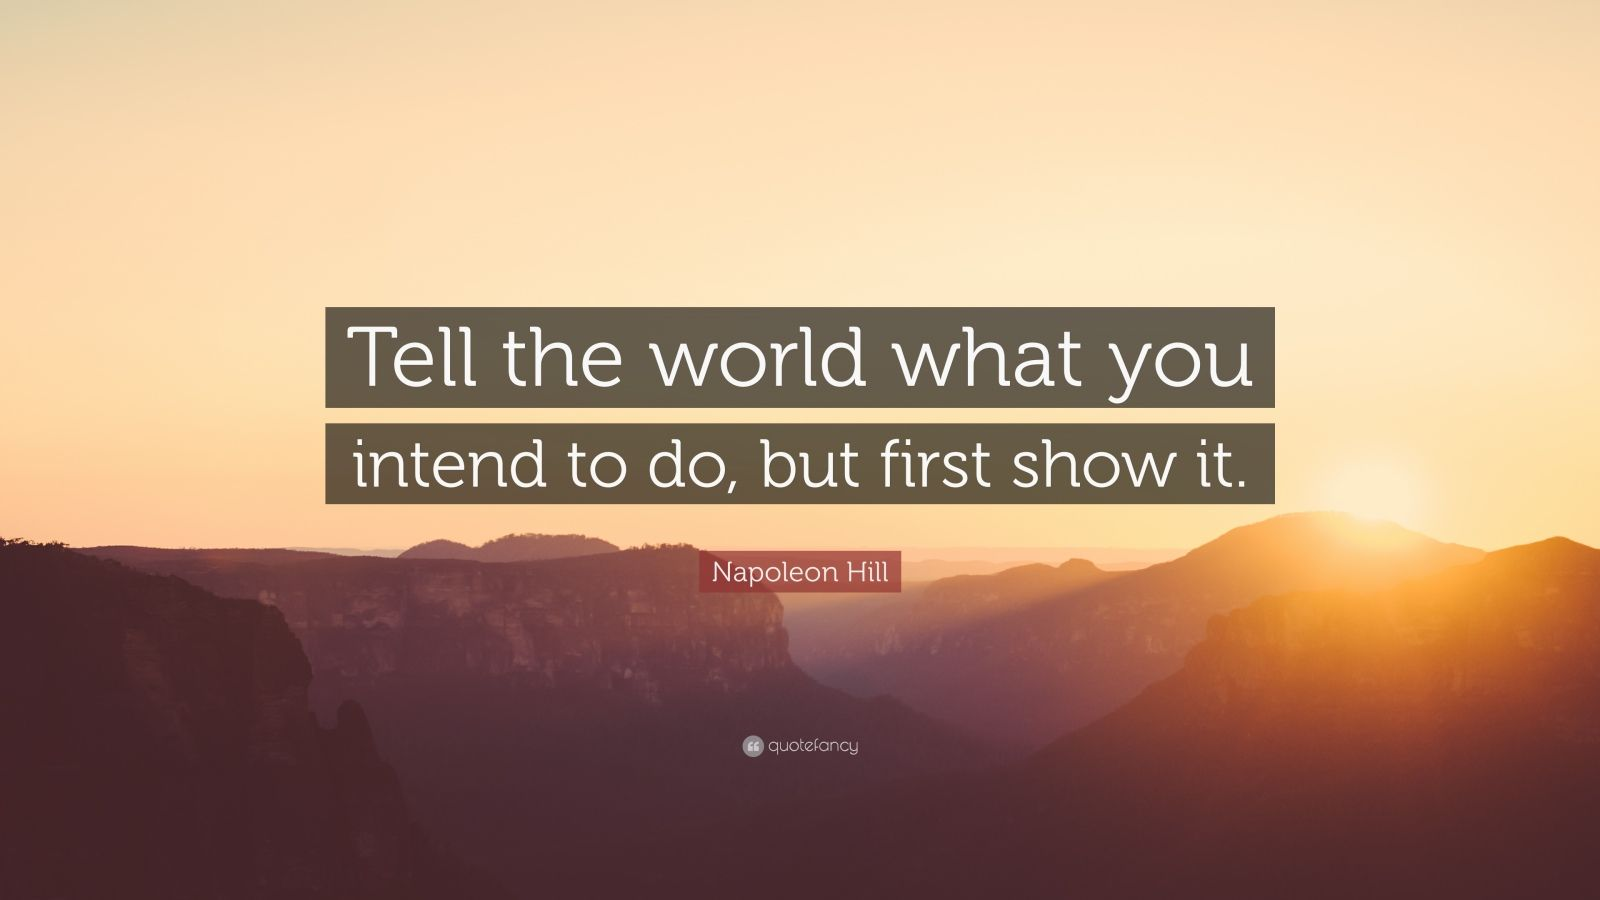 Images Of Inspiring Quotes Wallpaper Napoleon Hill Quote Tell The World What You Intend To Do